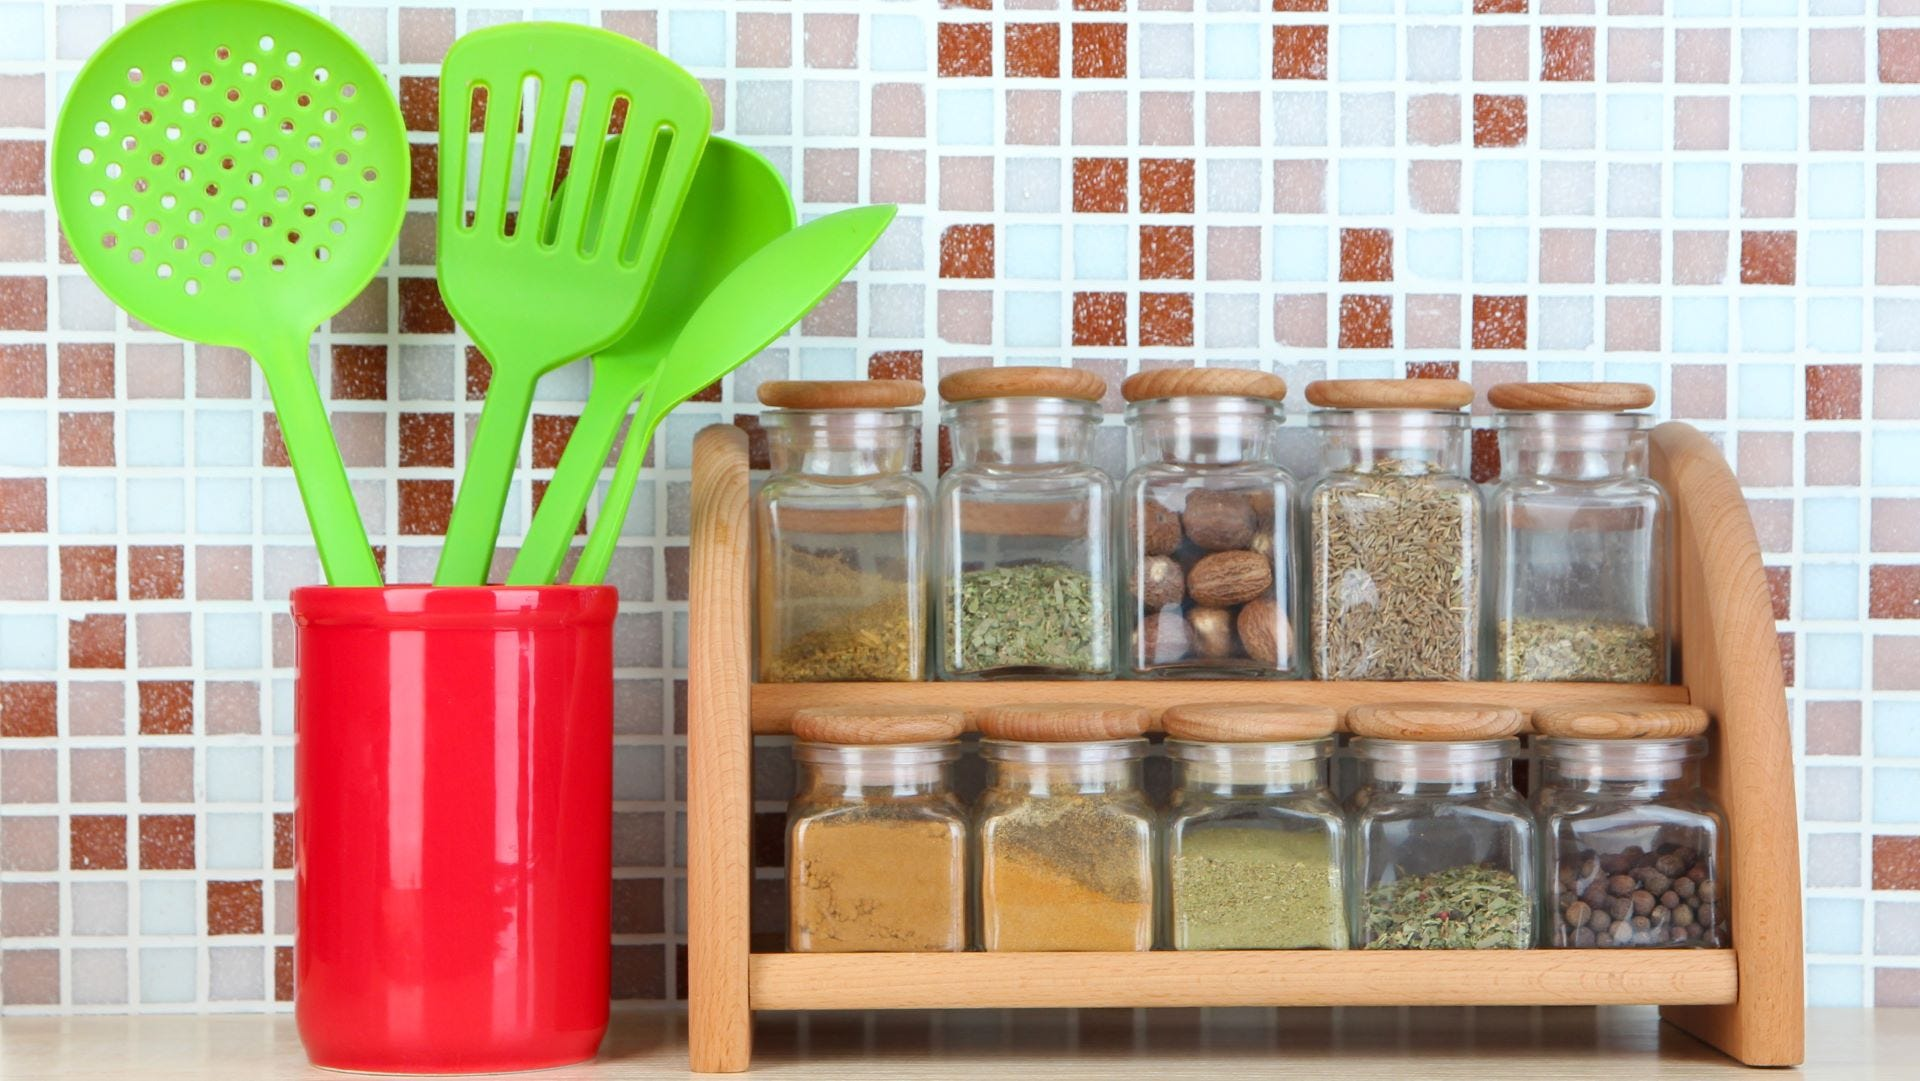 A container of spatulas and a spice rack on a counter.